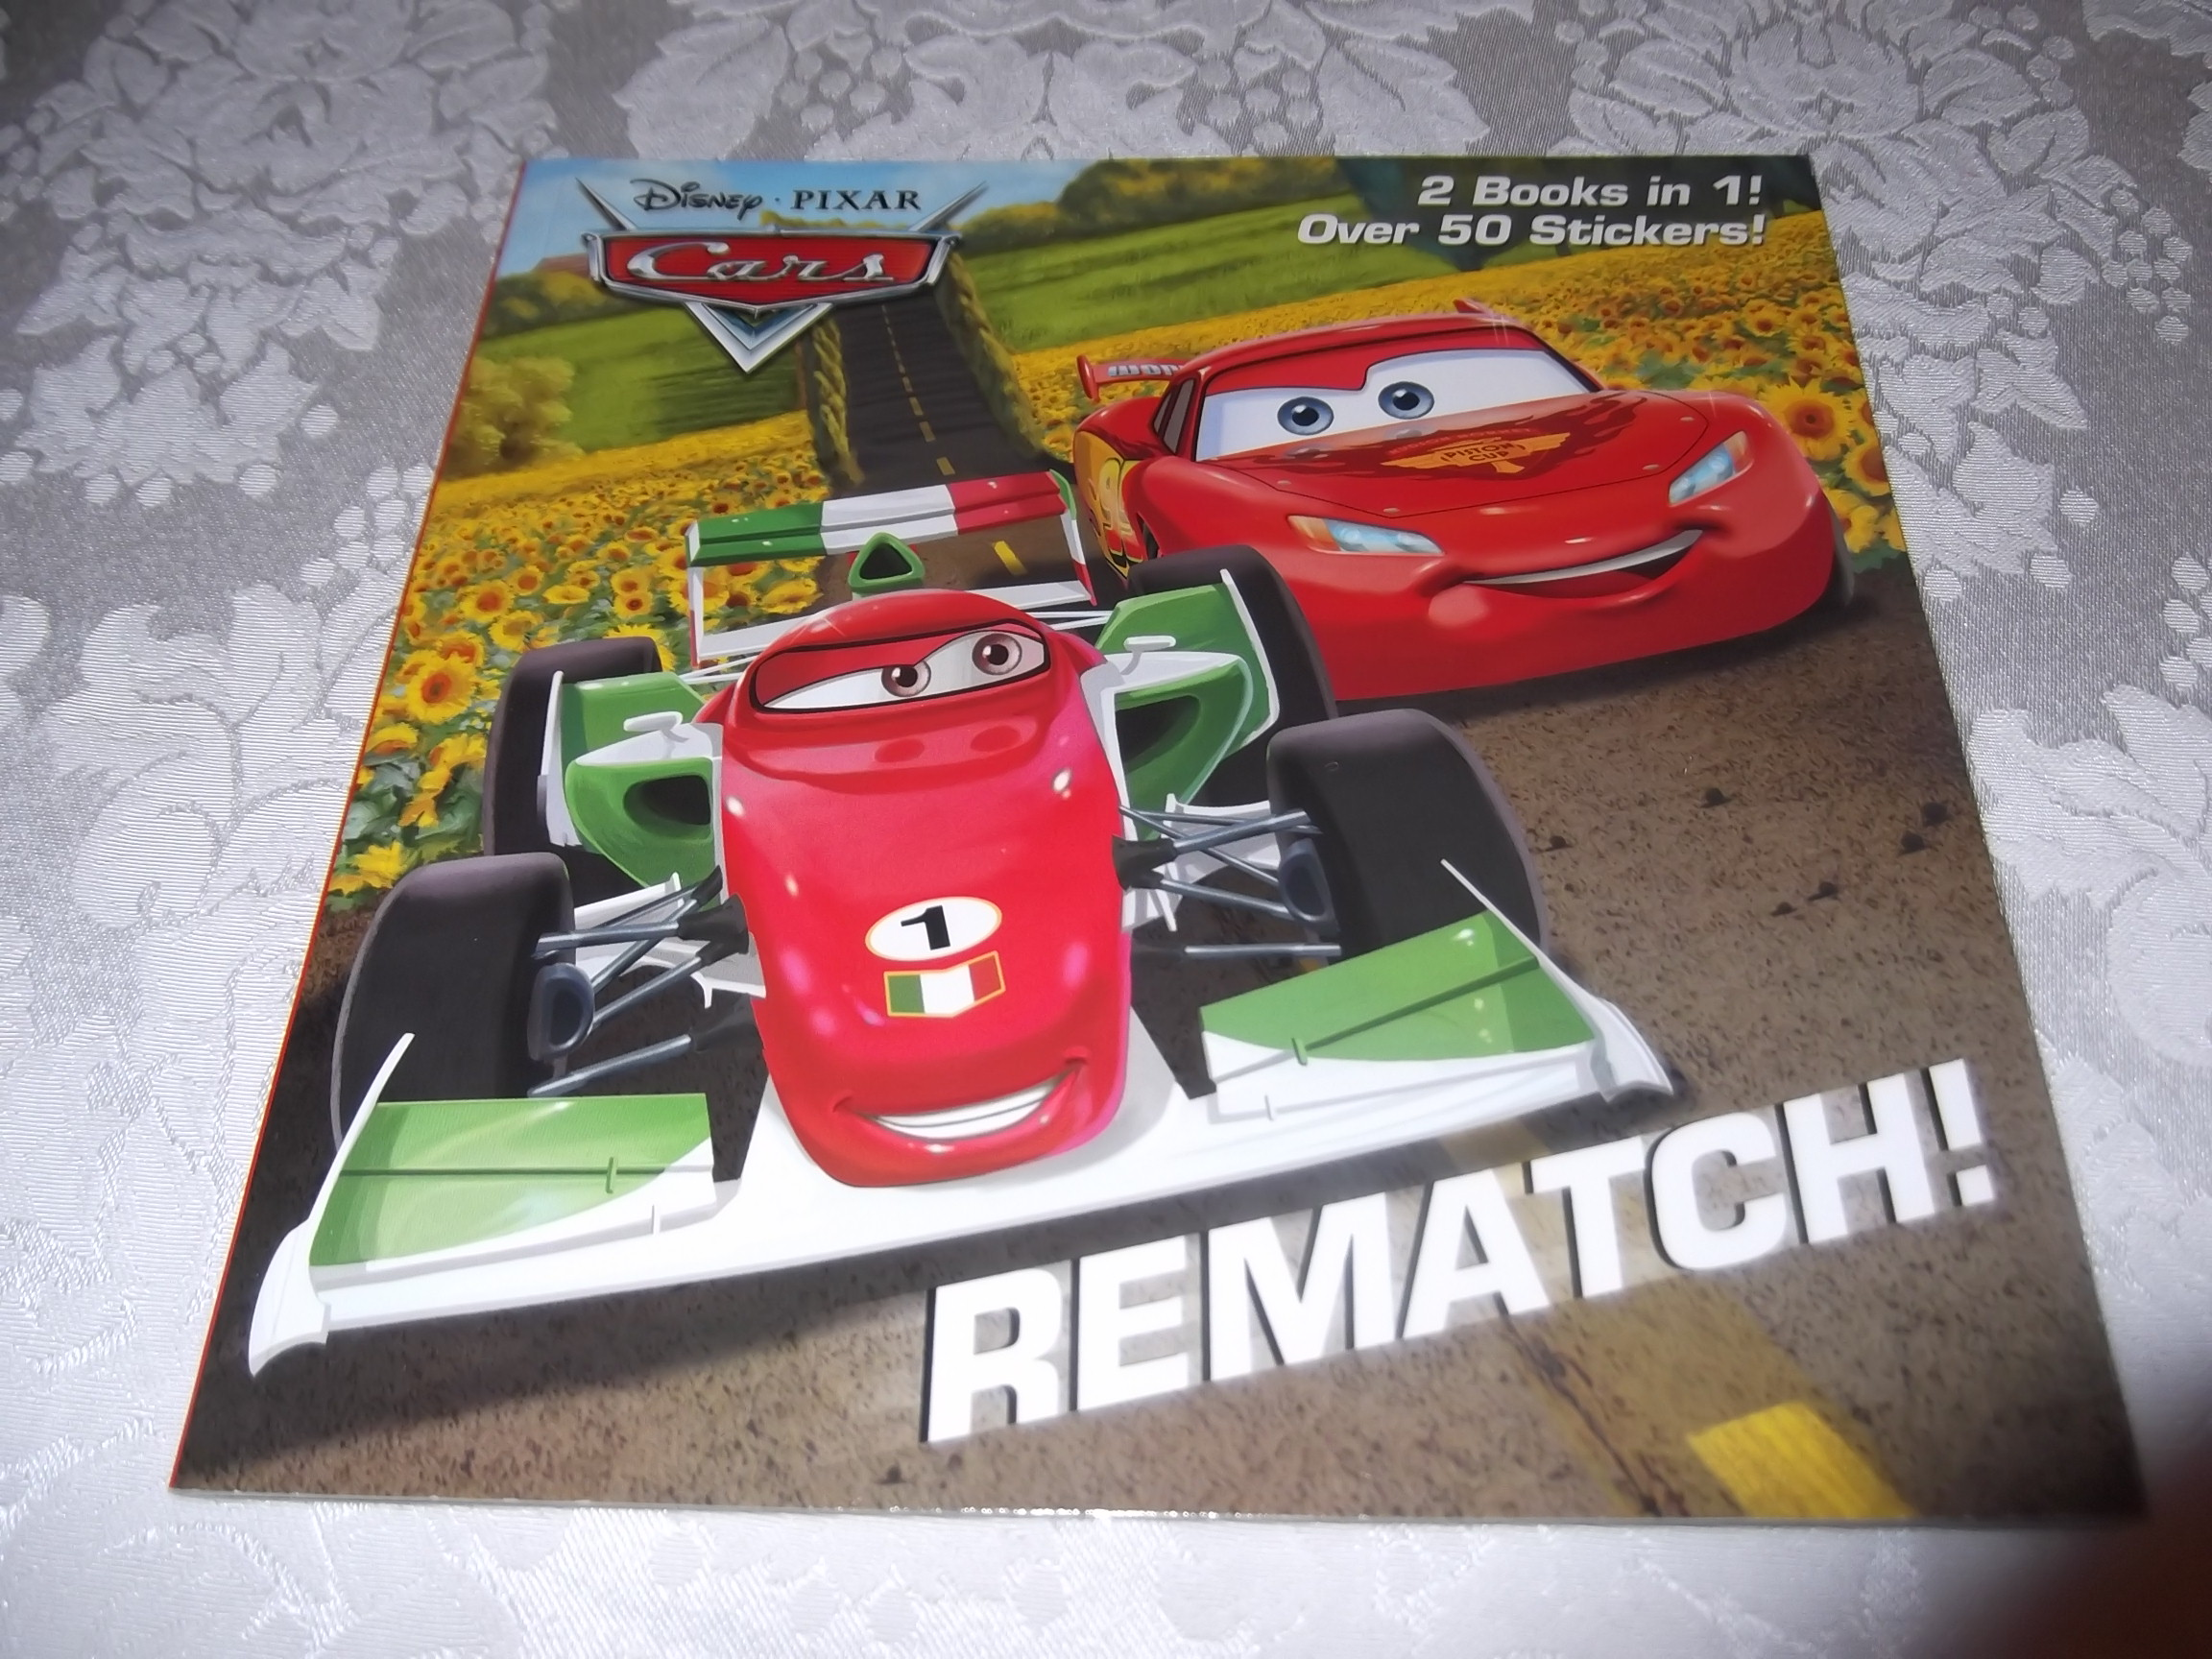 Disney Pixar Cars Rematch! Mater In Paris 2 Books in 1 50+ Stickers brand new sc